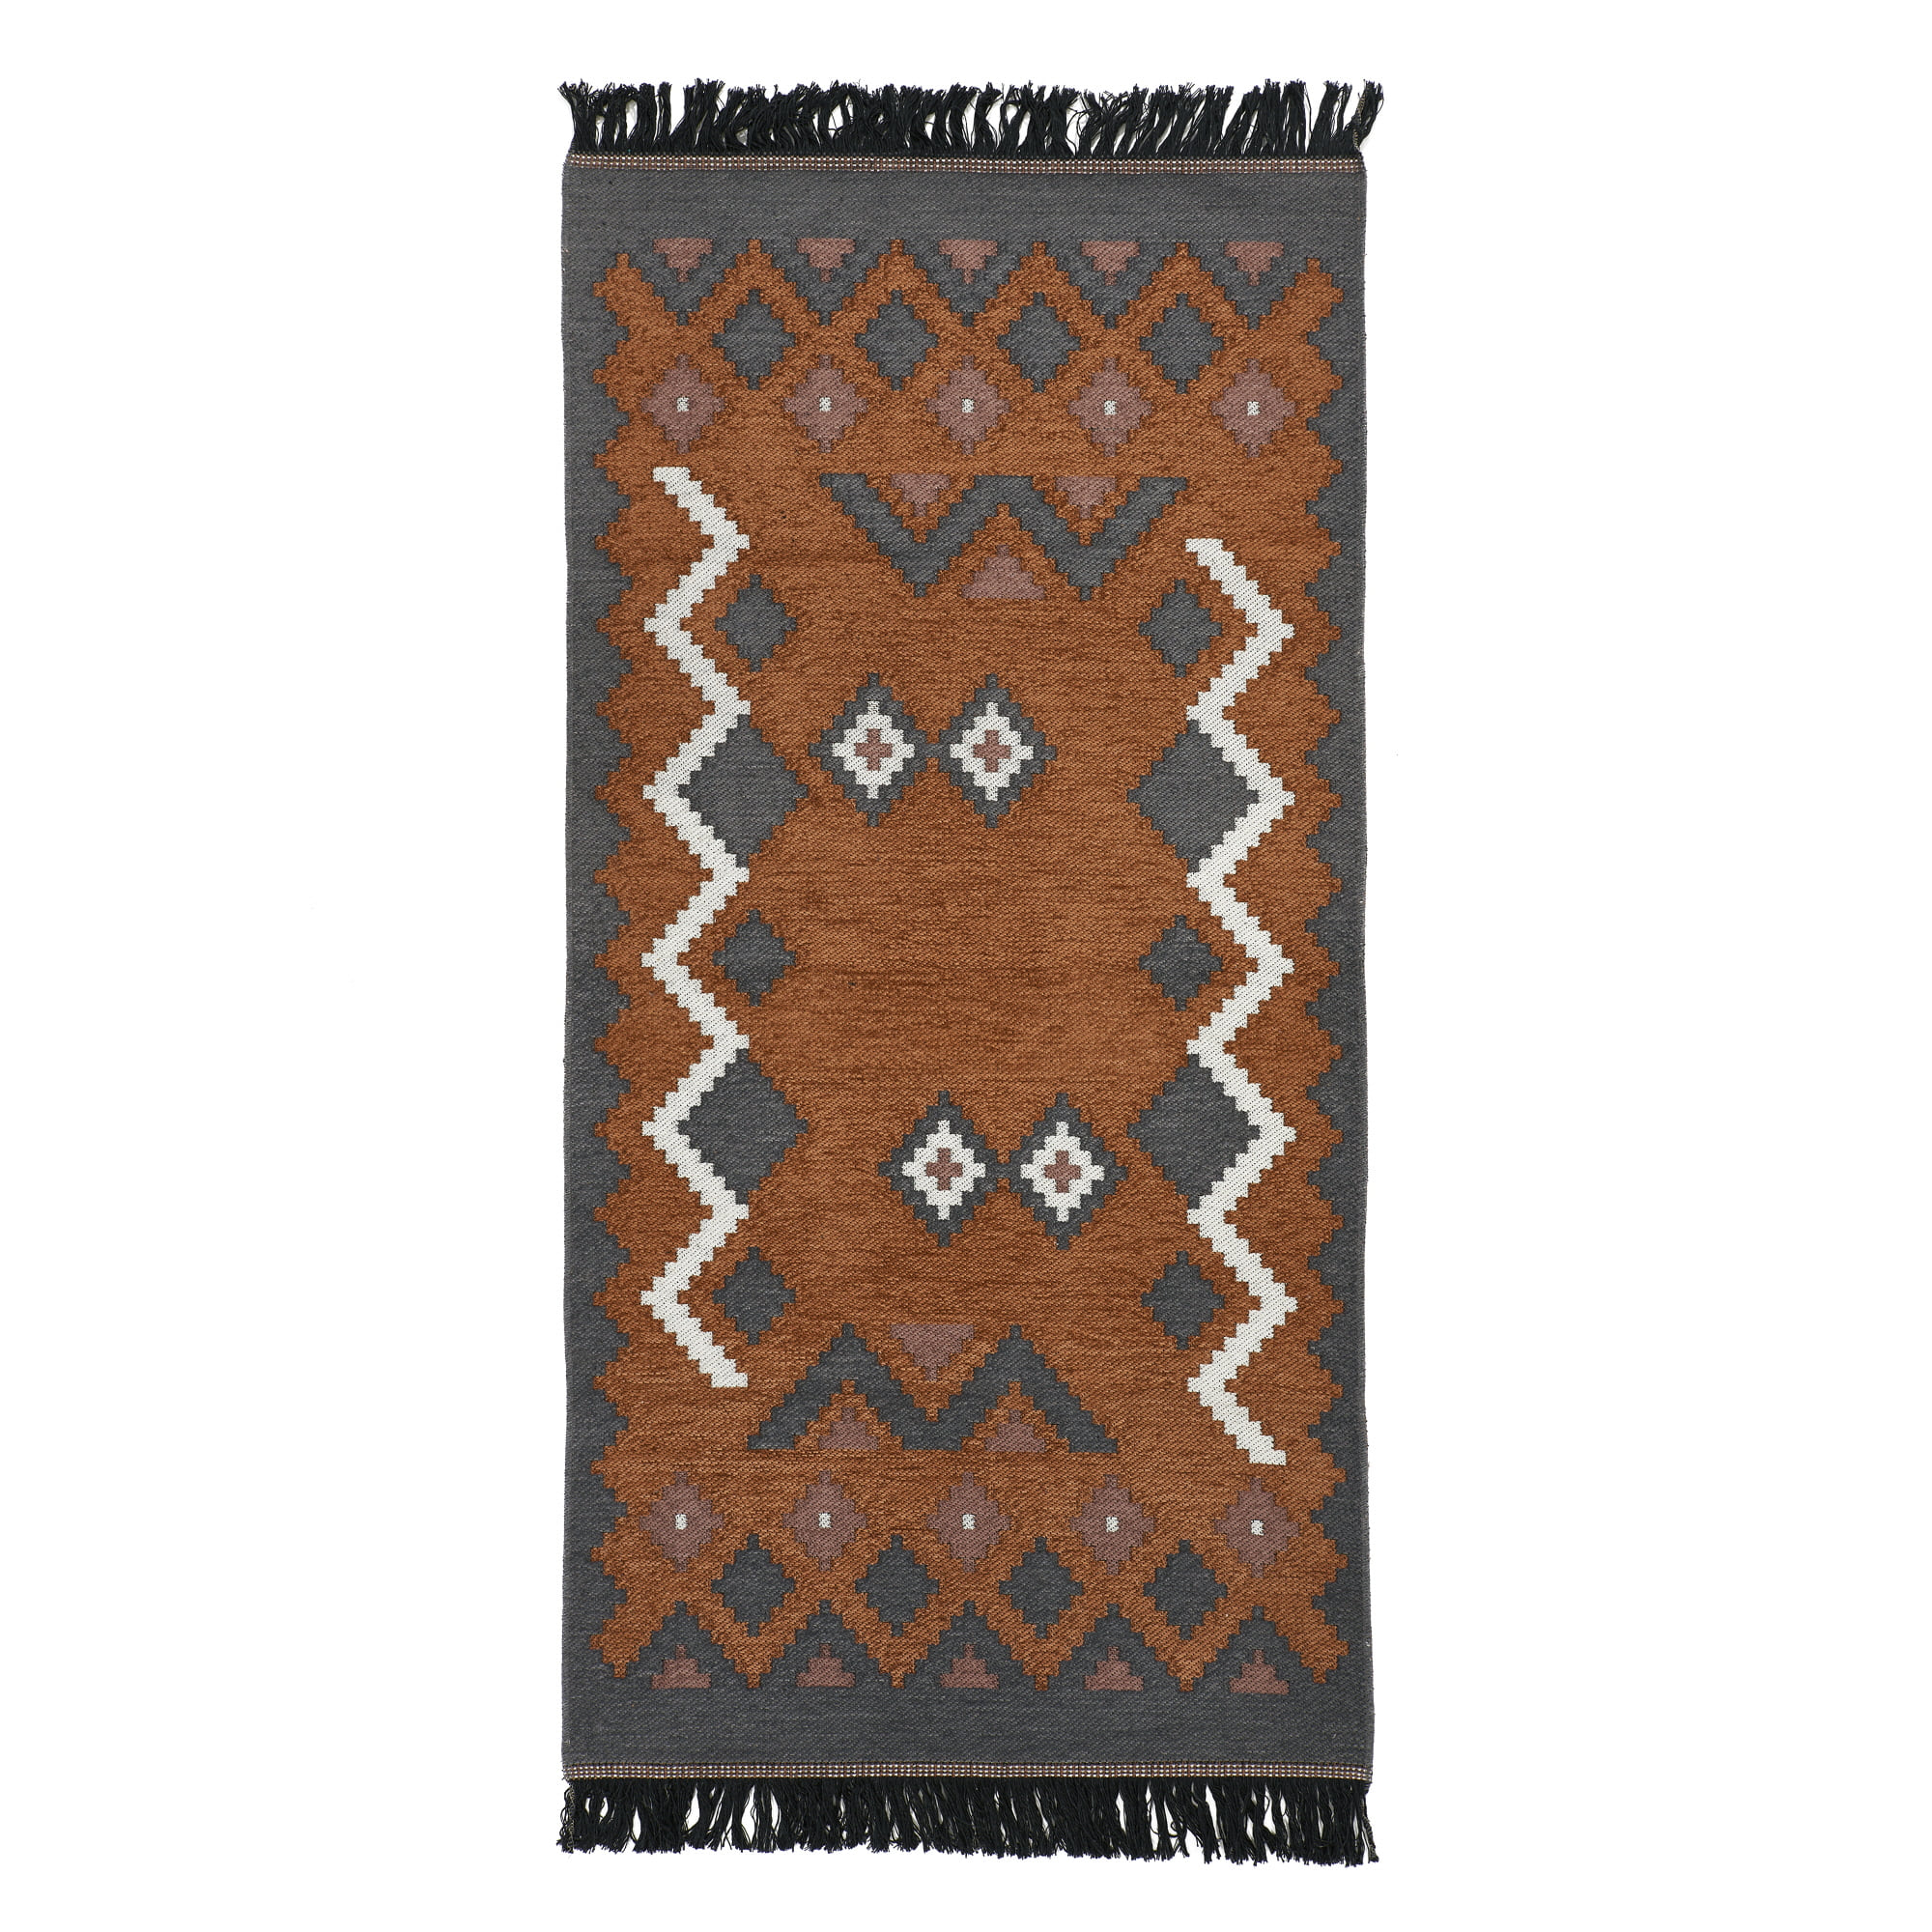 KILIM RUG(M) - brown gray